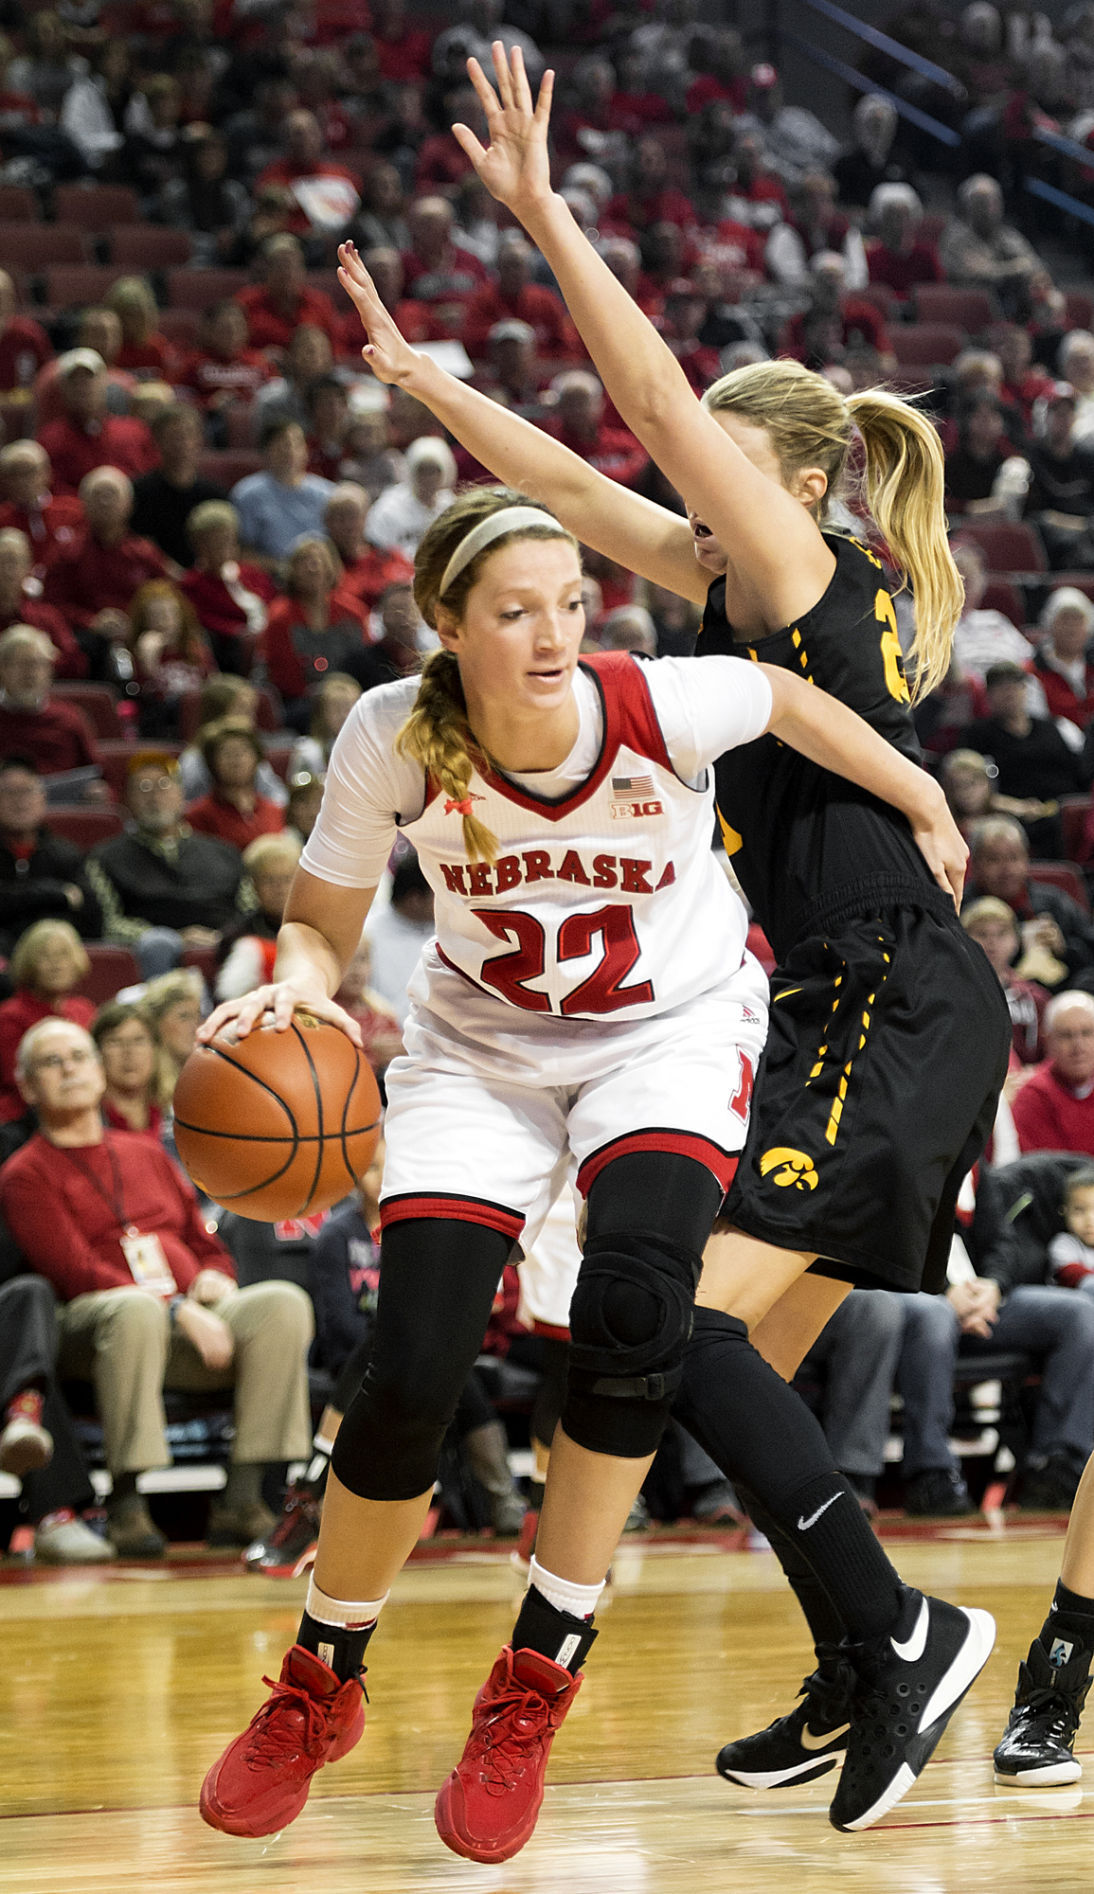 Nebraska v. Iowa, women's basketball, 12/31/2015